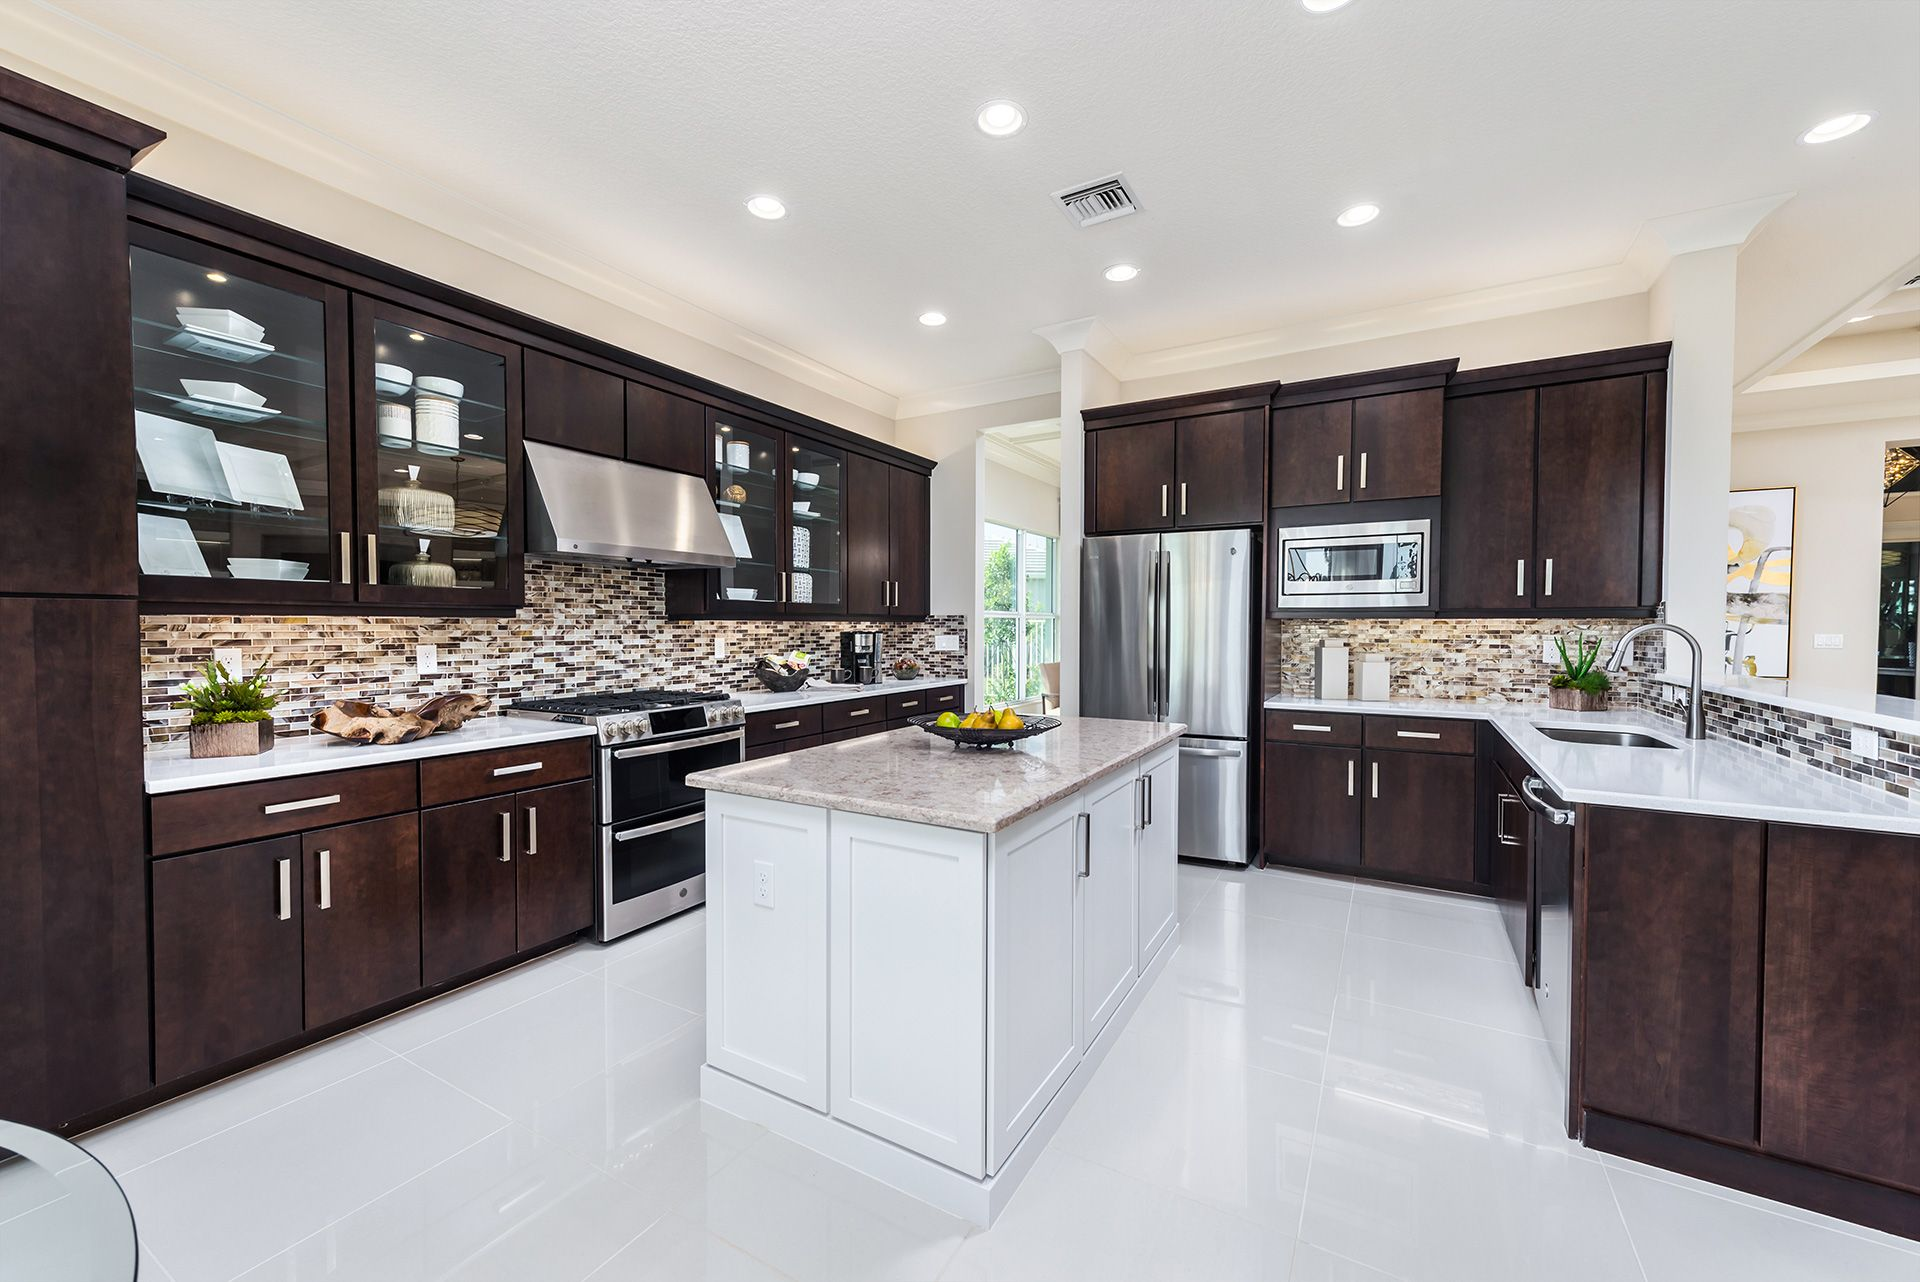 Kitchen featured in the Carlyle By GL Homes in Martin-St. Lucie-Okeechobee Counties, FL